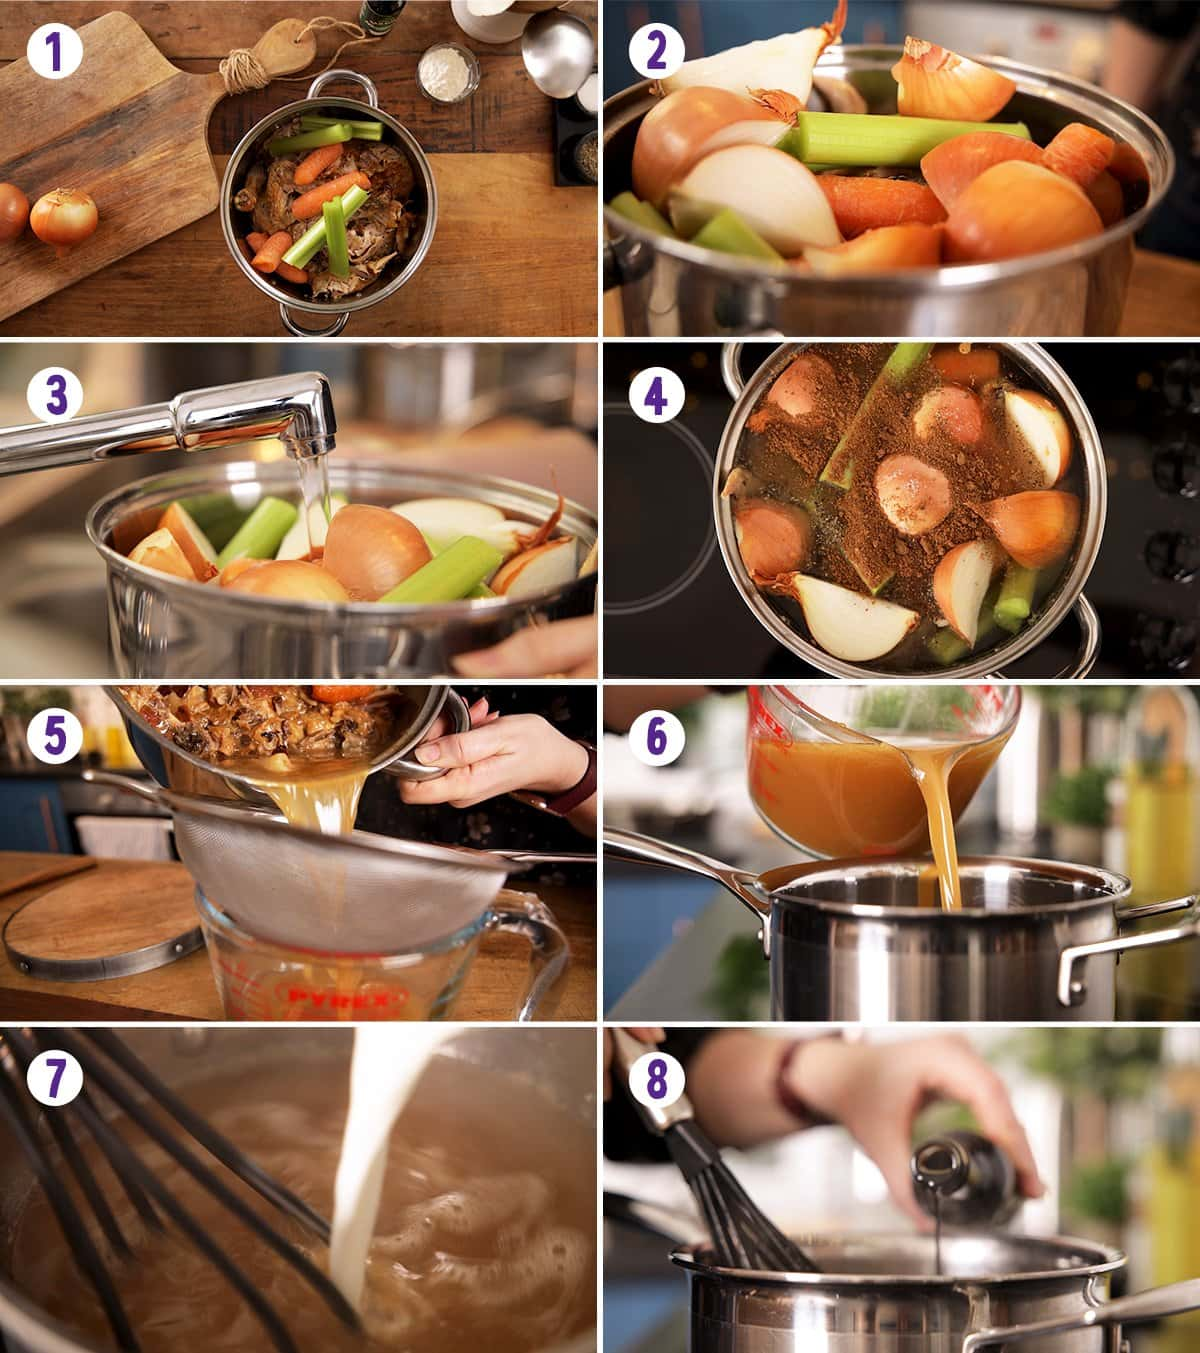 8 image collage showing how to make make-ahead Christmas gravy